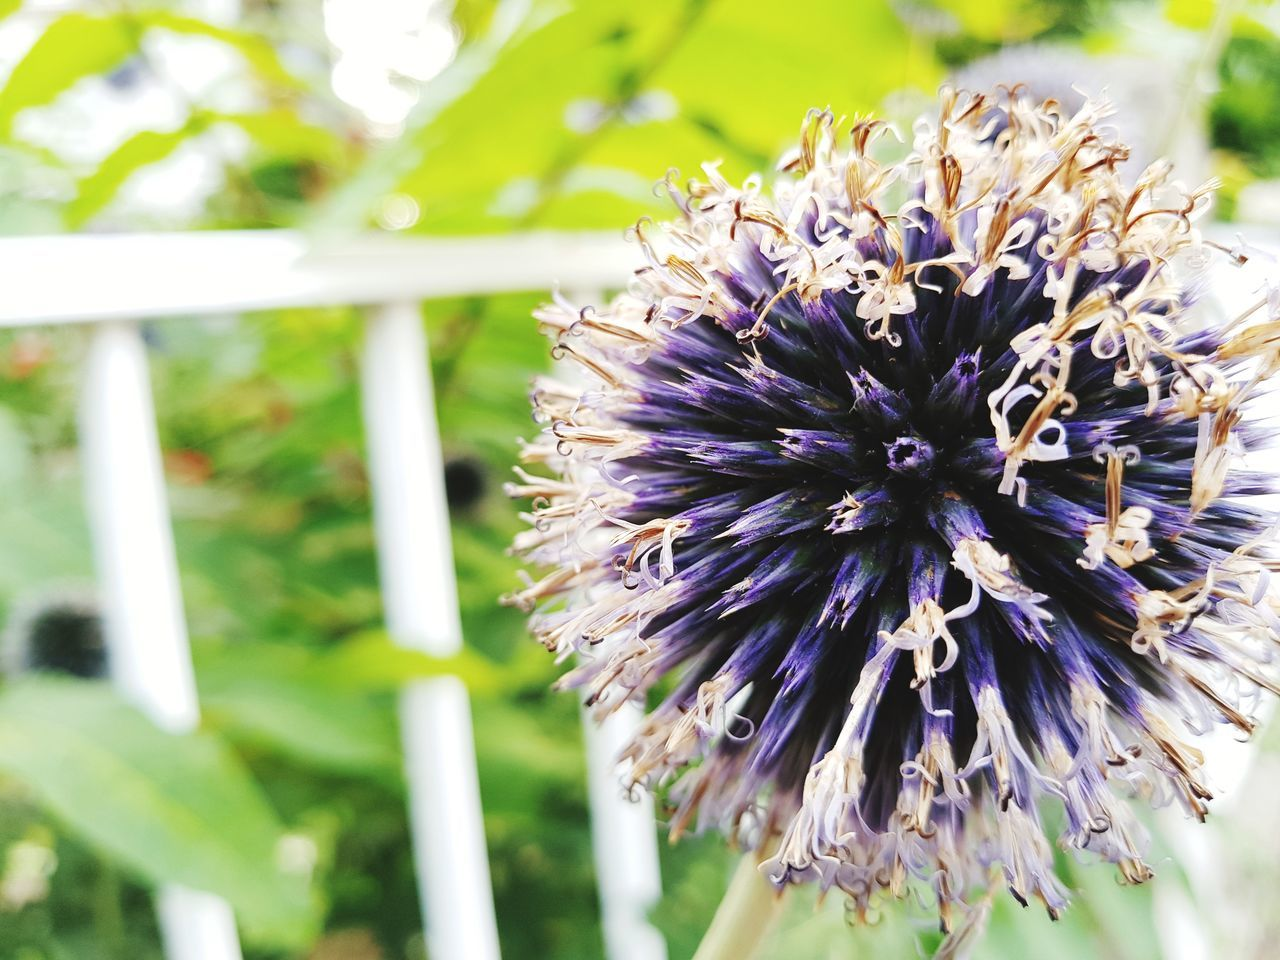 flower, nature, purple, close-up, fragility, beauty in nature, day, no people, outdoors, growth, focus on foreground, plant, freshness, flower head, animal themes